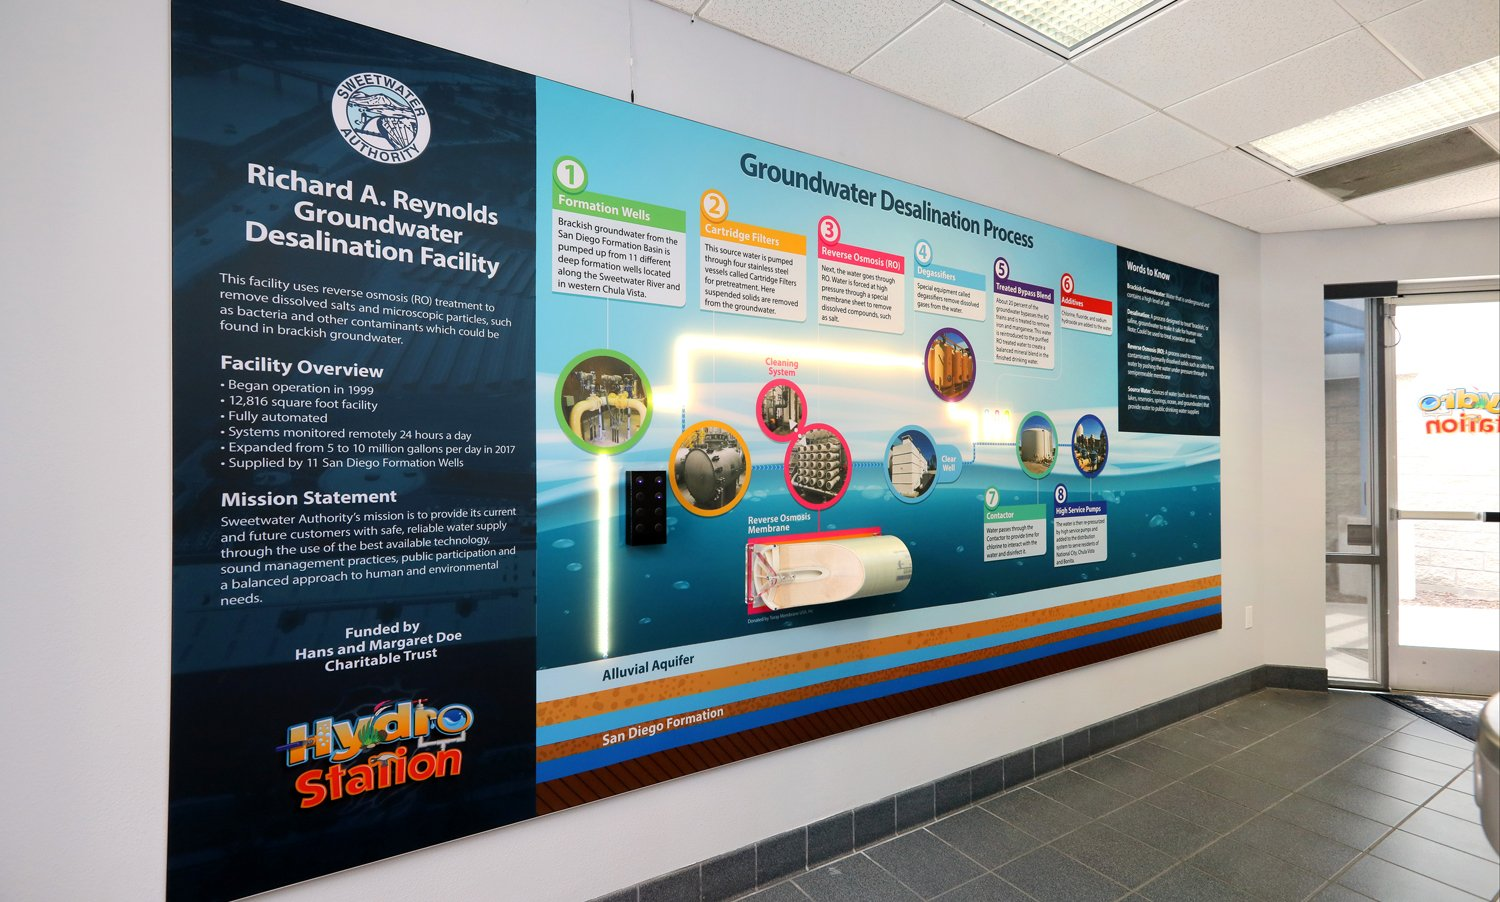 The Hydro Station project is an interactive educational space that features learning exhibits and hands- on activities dedicated to introducing fifth grade students to the ecological cycle of water, water conservation, water quality, and careers in the water industry. Photo: Sweetwater Authority